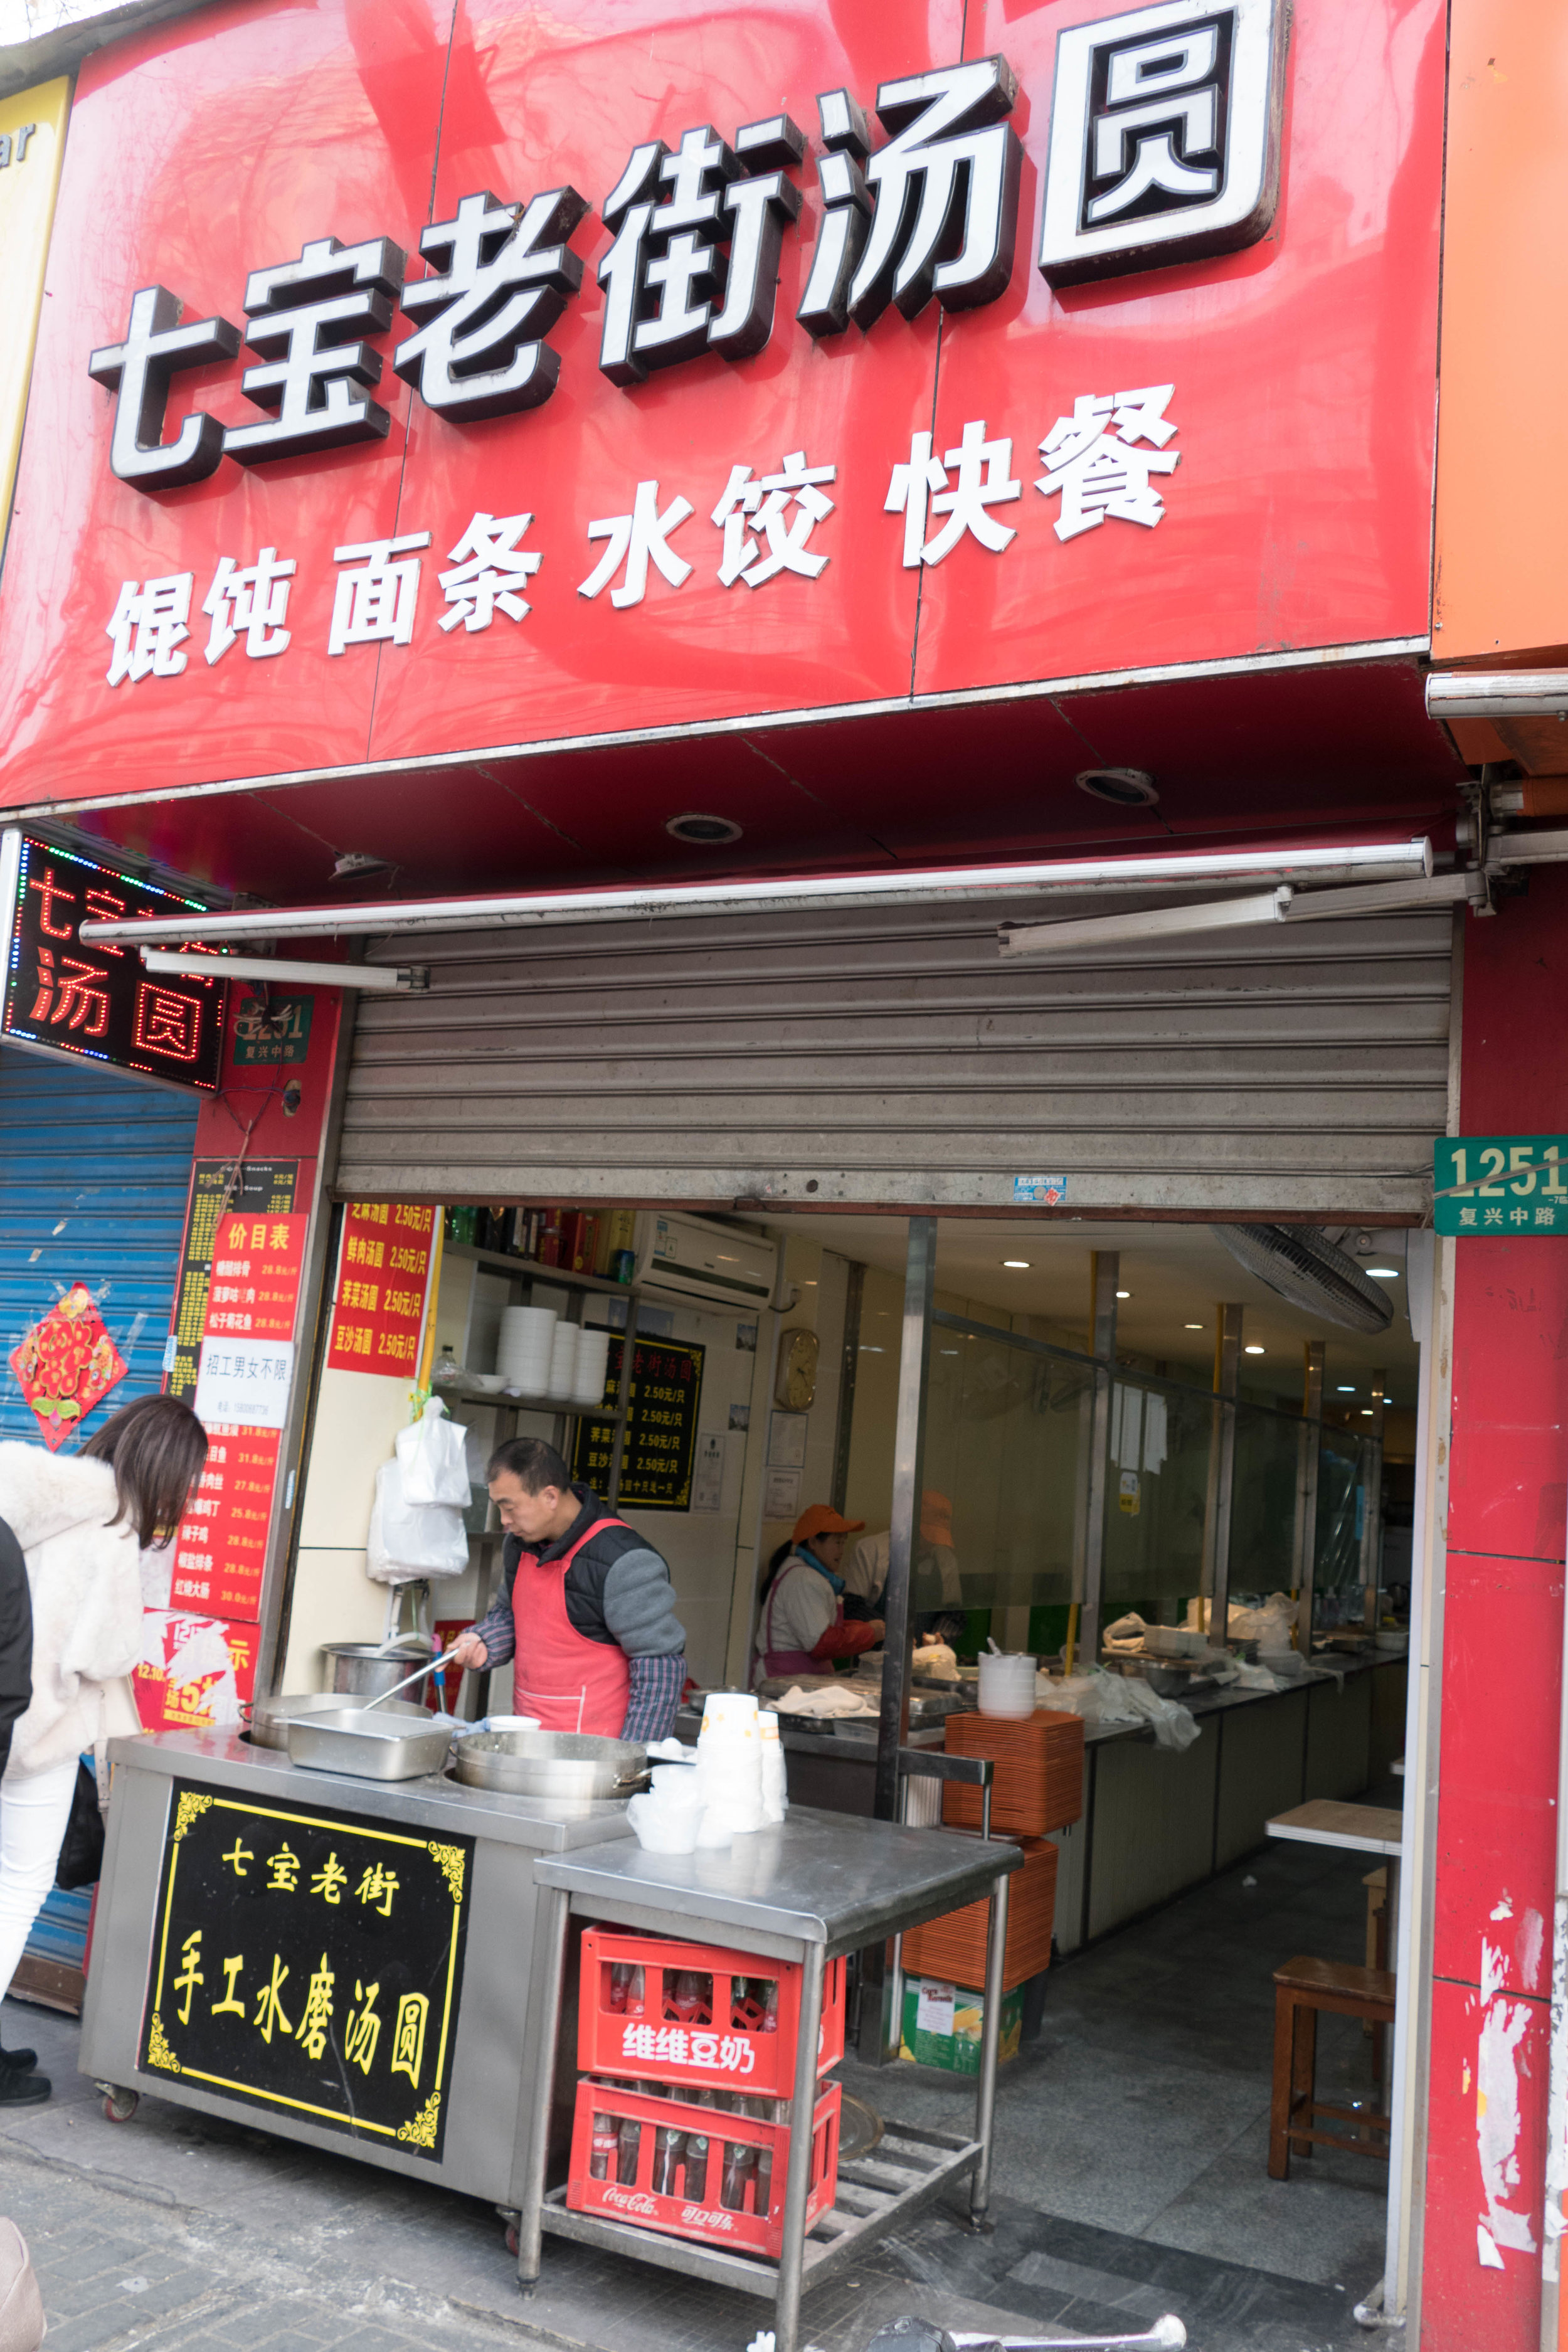 This store specializes in the rice dumplings (tangyuan 湯圓). A great Chinese dessert!